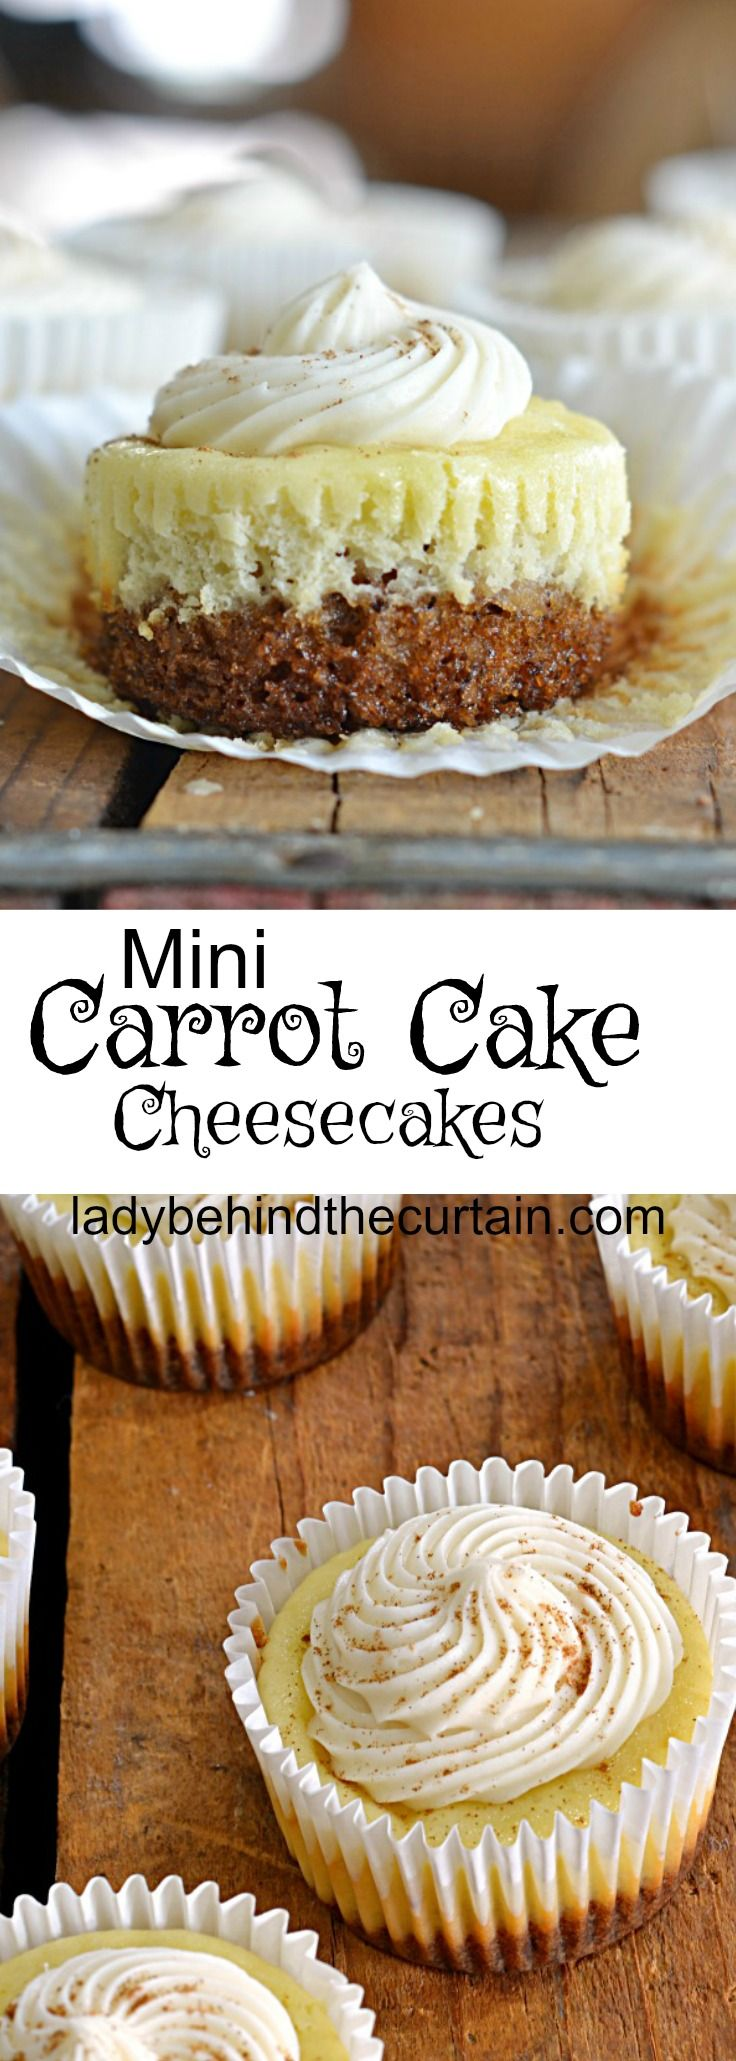 Mini Carrot Cake Cheesecakes | carrot cake, cheesecake, easter dessert ...